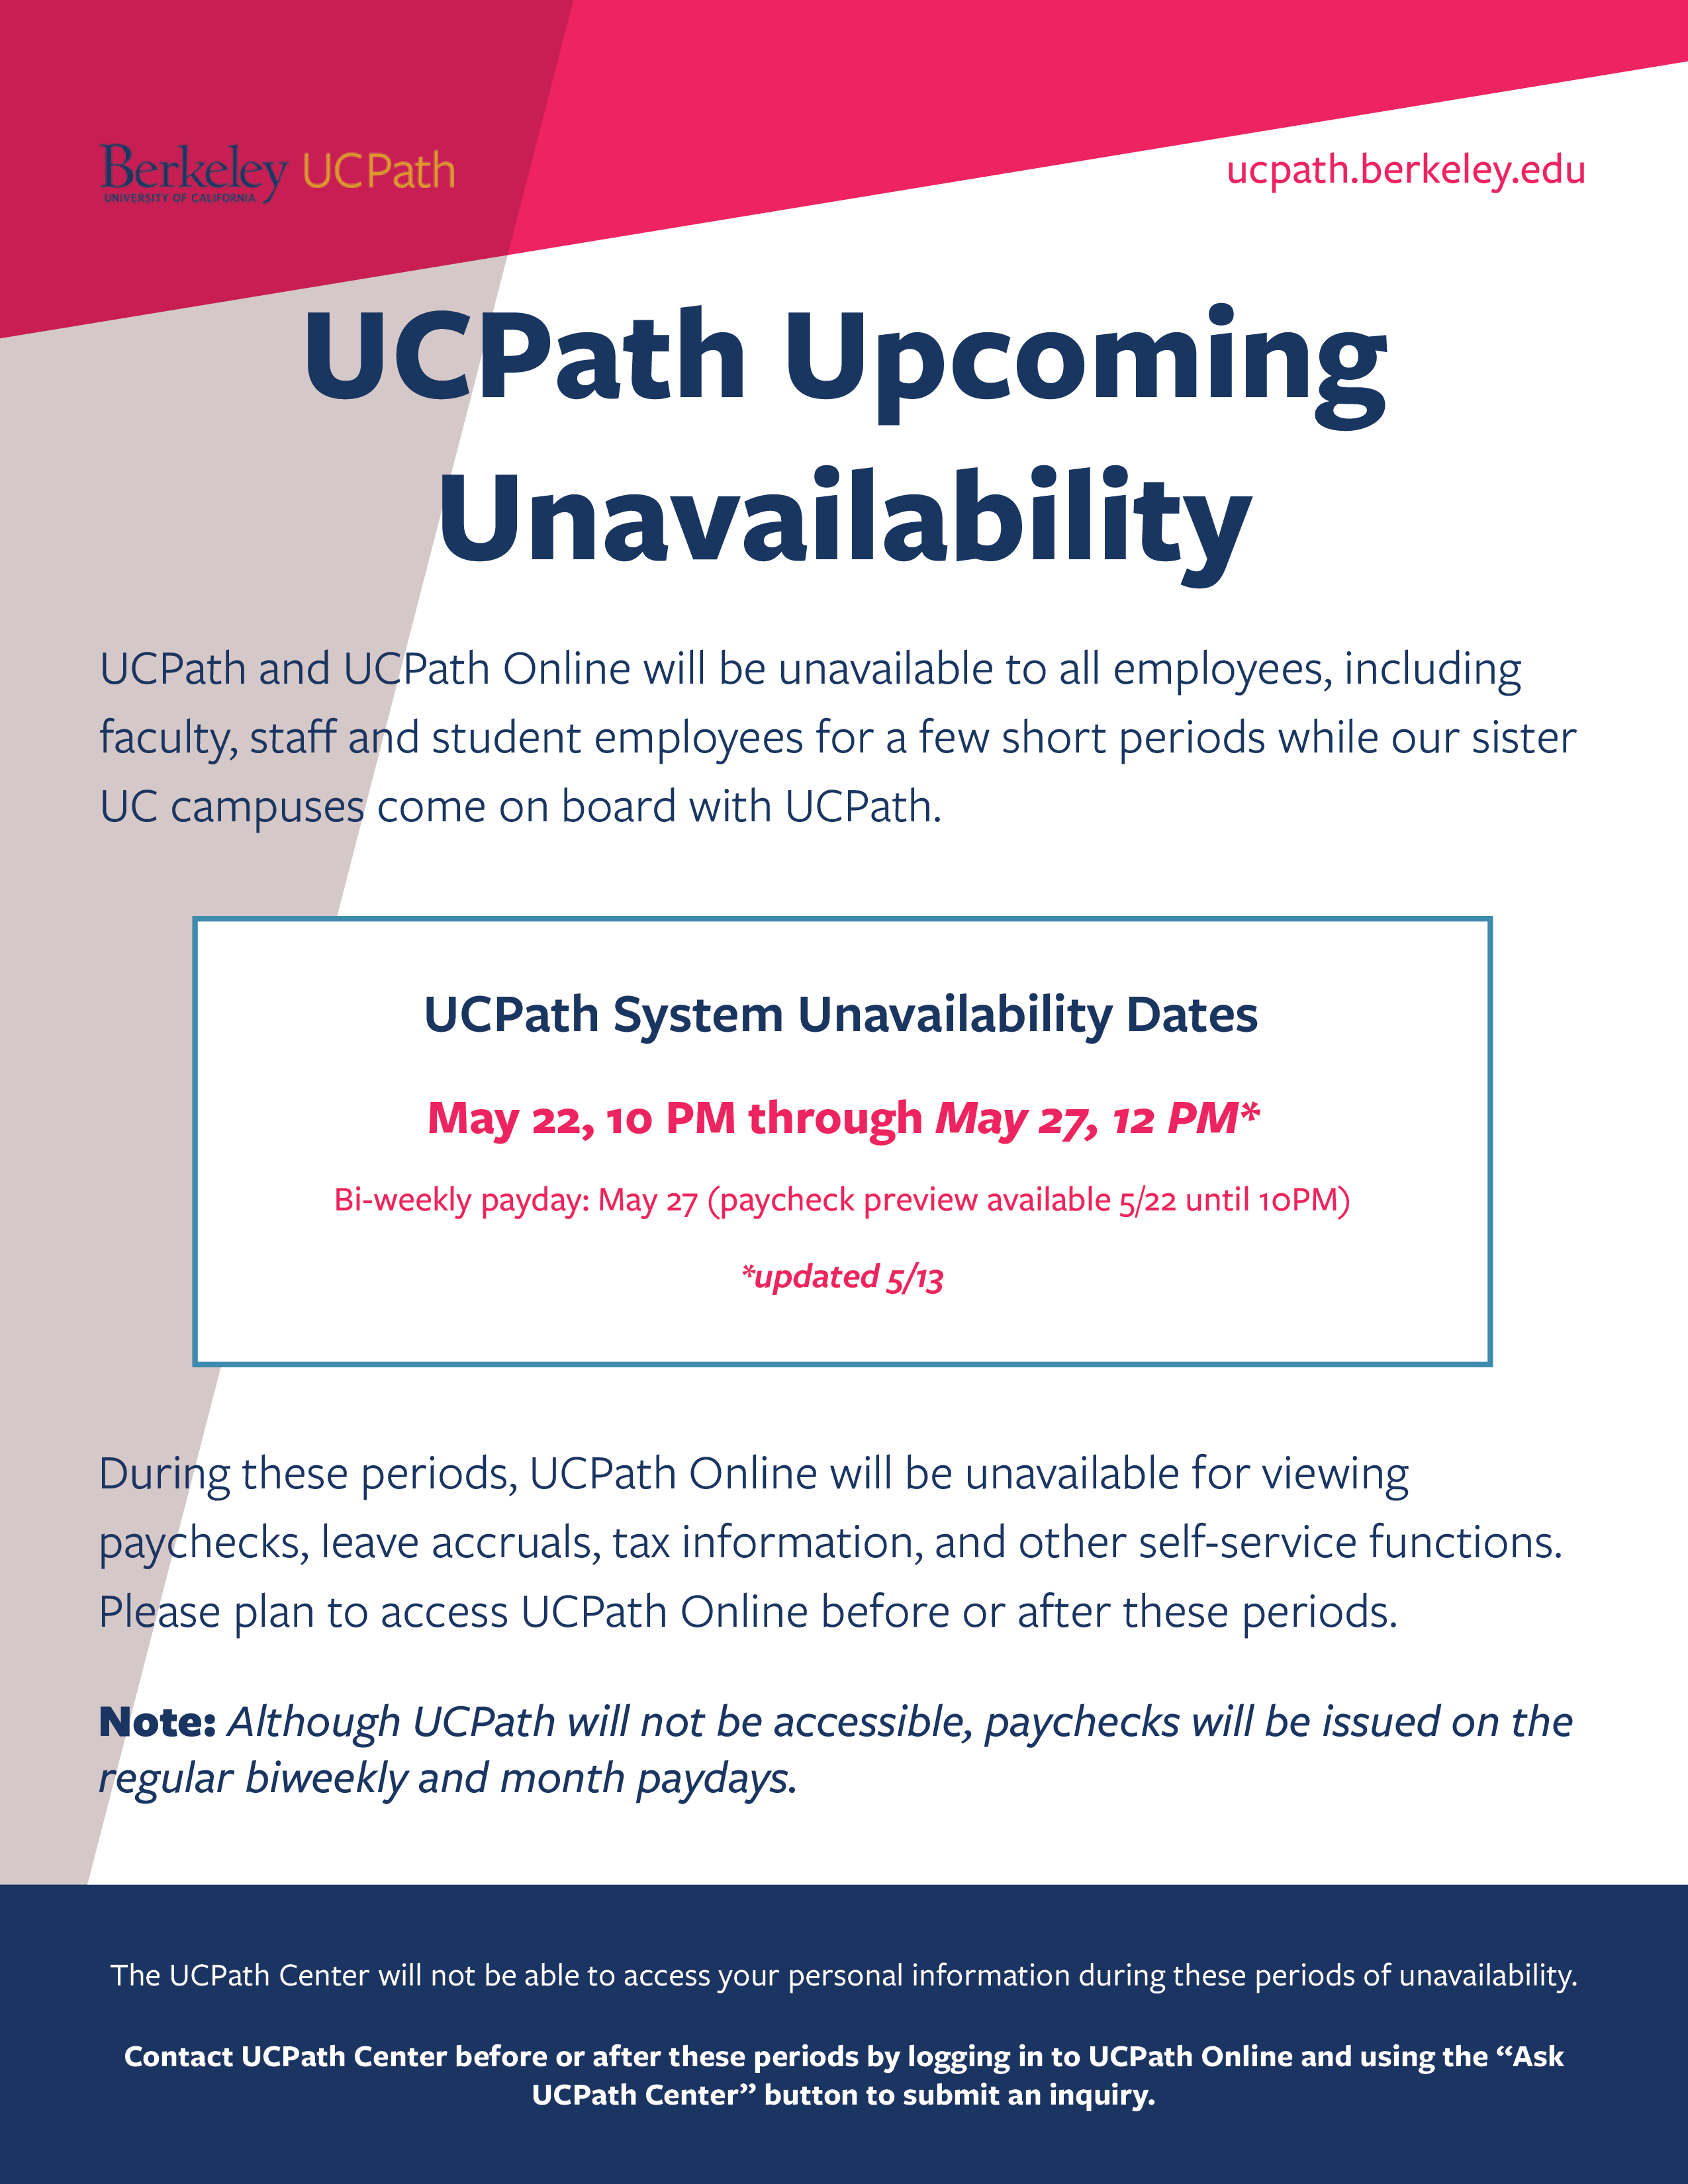 UCPath Upcoming Unavailability updated 5/13